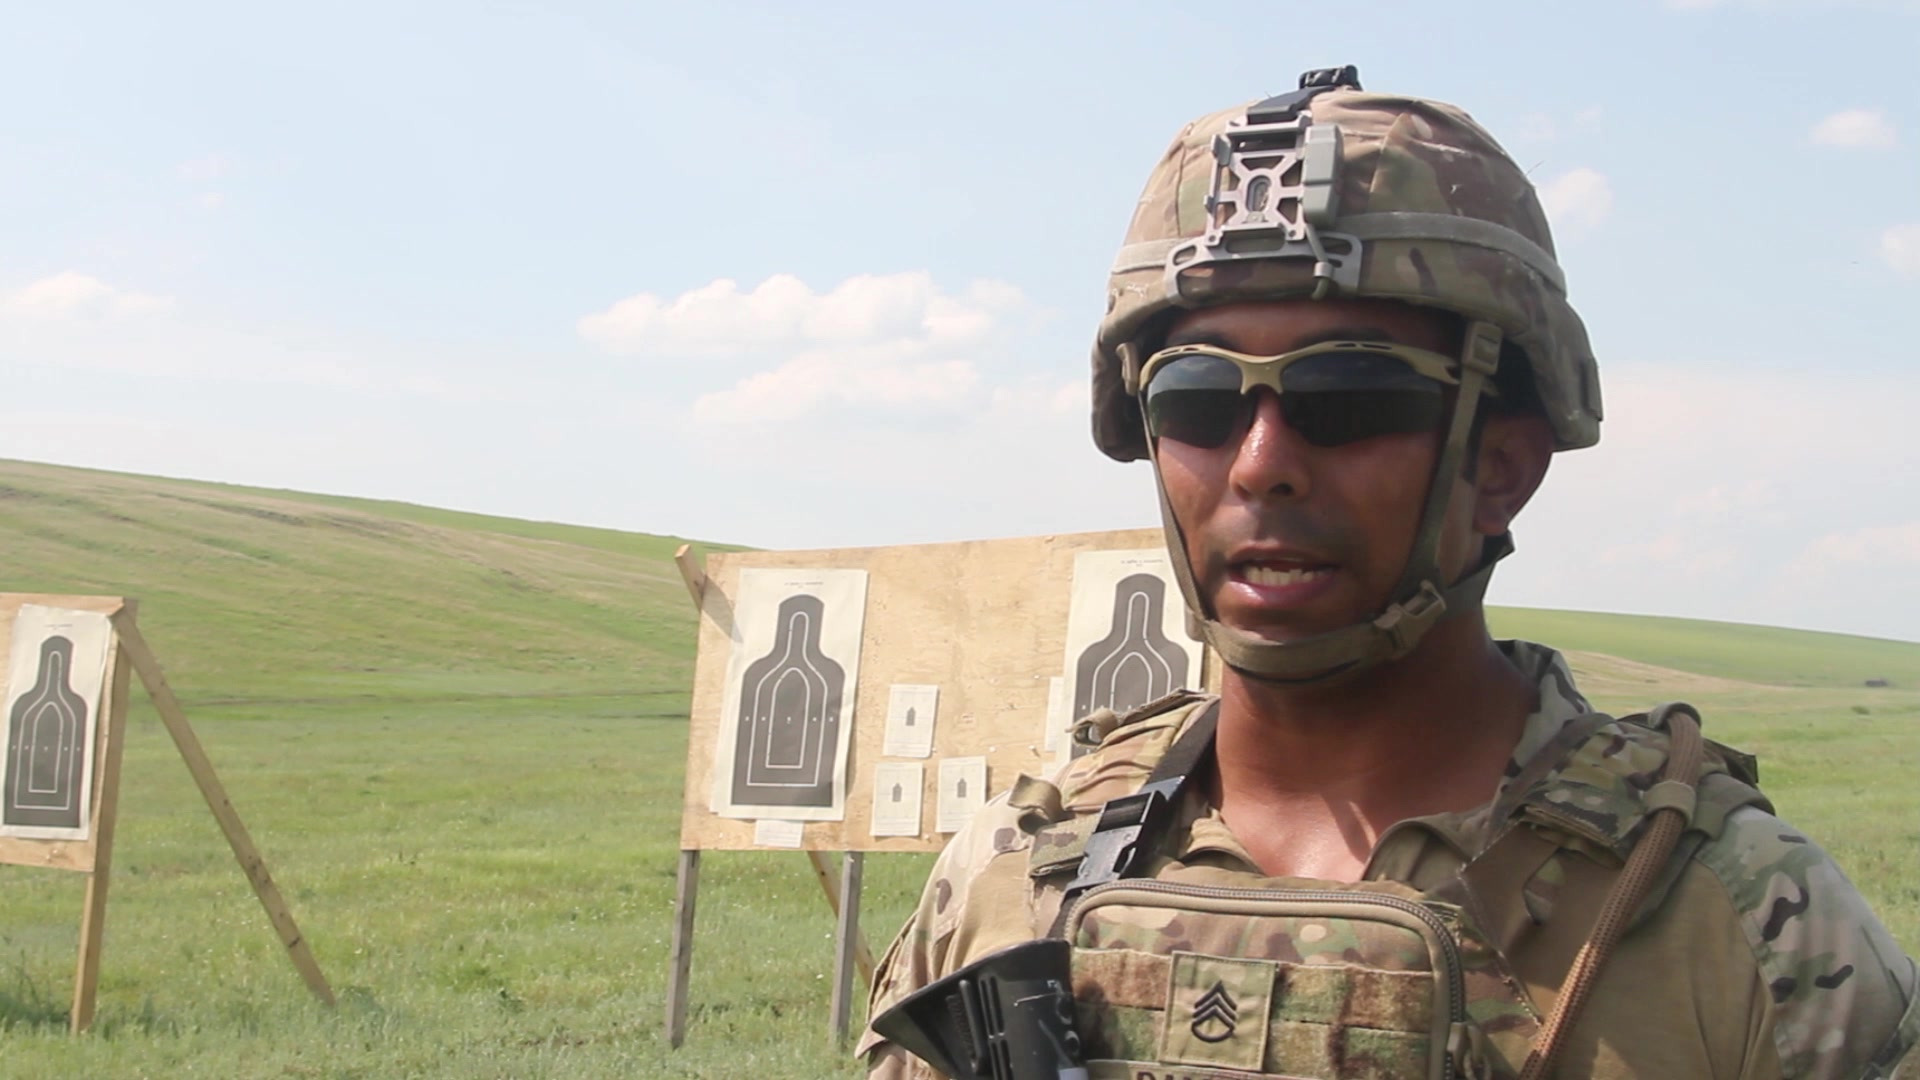 Iron Rangers conduct advance rifle marksmanship at Smardan Training Area, Romania, June 5, 2019. Advanced marksmanship training helps prepare the Soldiers of the 1-16th Infantry to be a lethal asset to NATO allies in support of Atlantic Resolve. U.S. Army video by Staff. Sgt. True Thao)